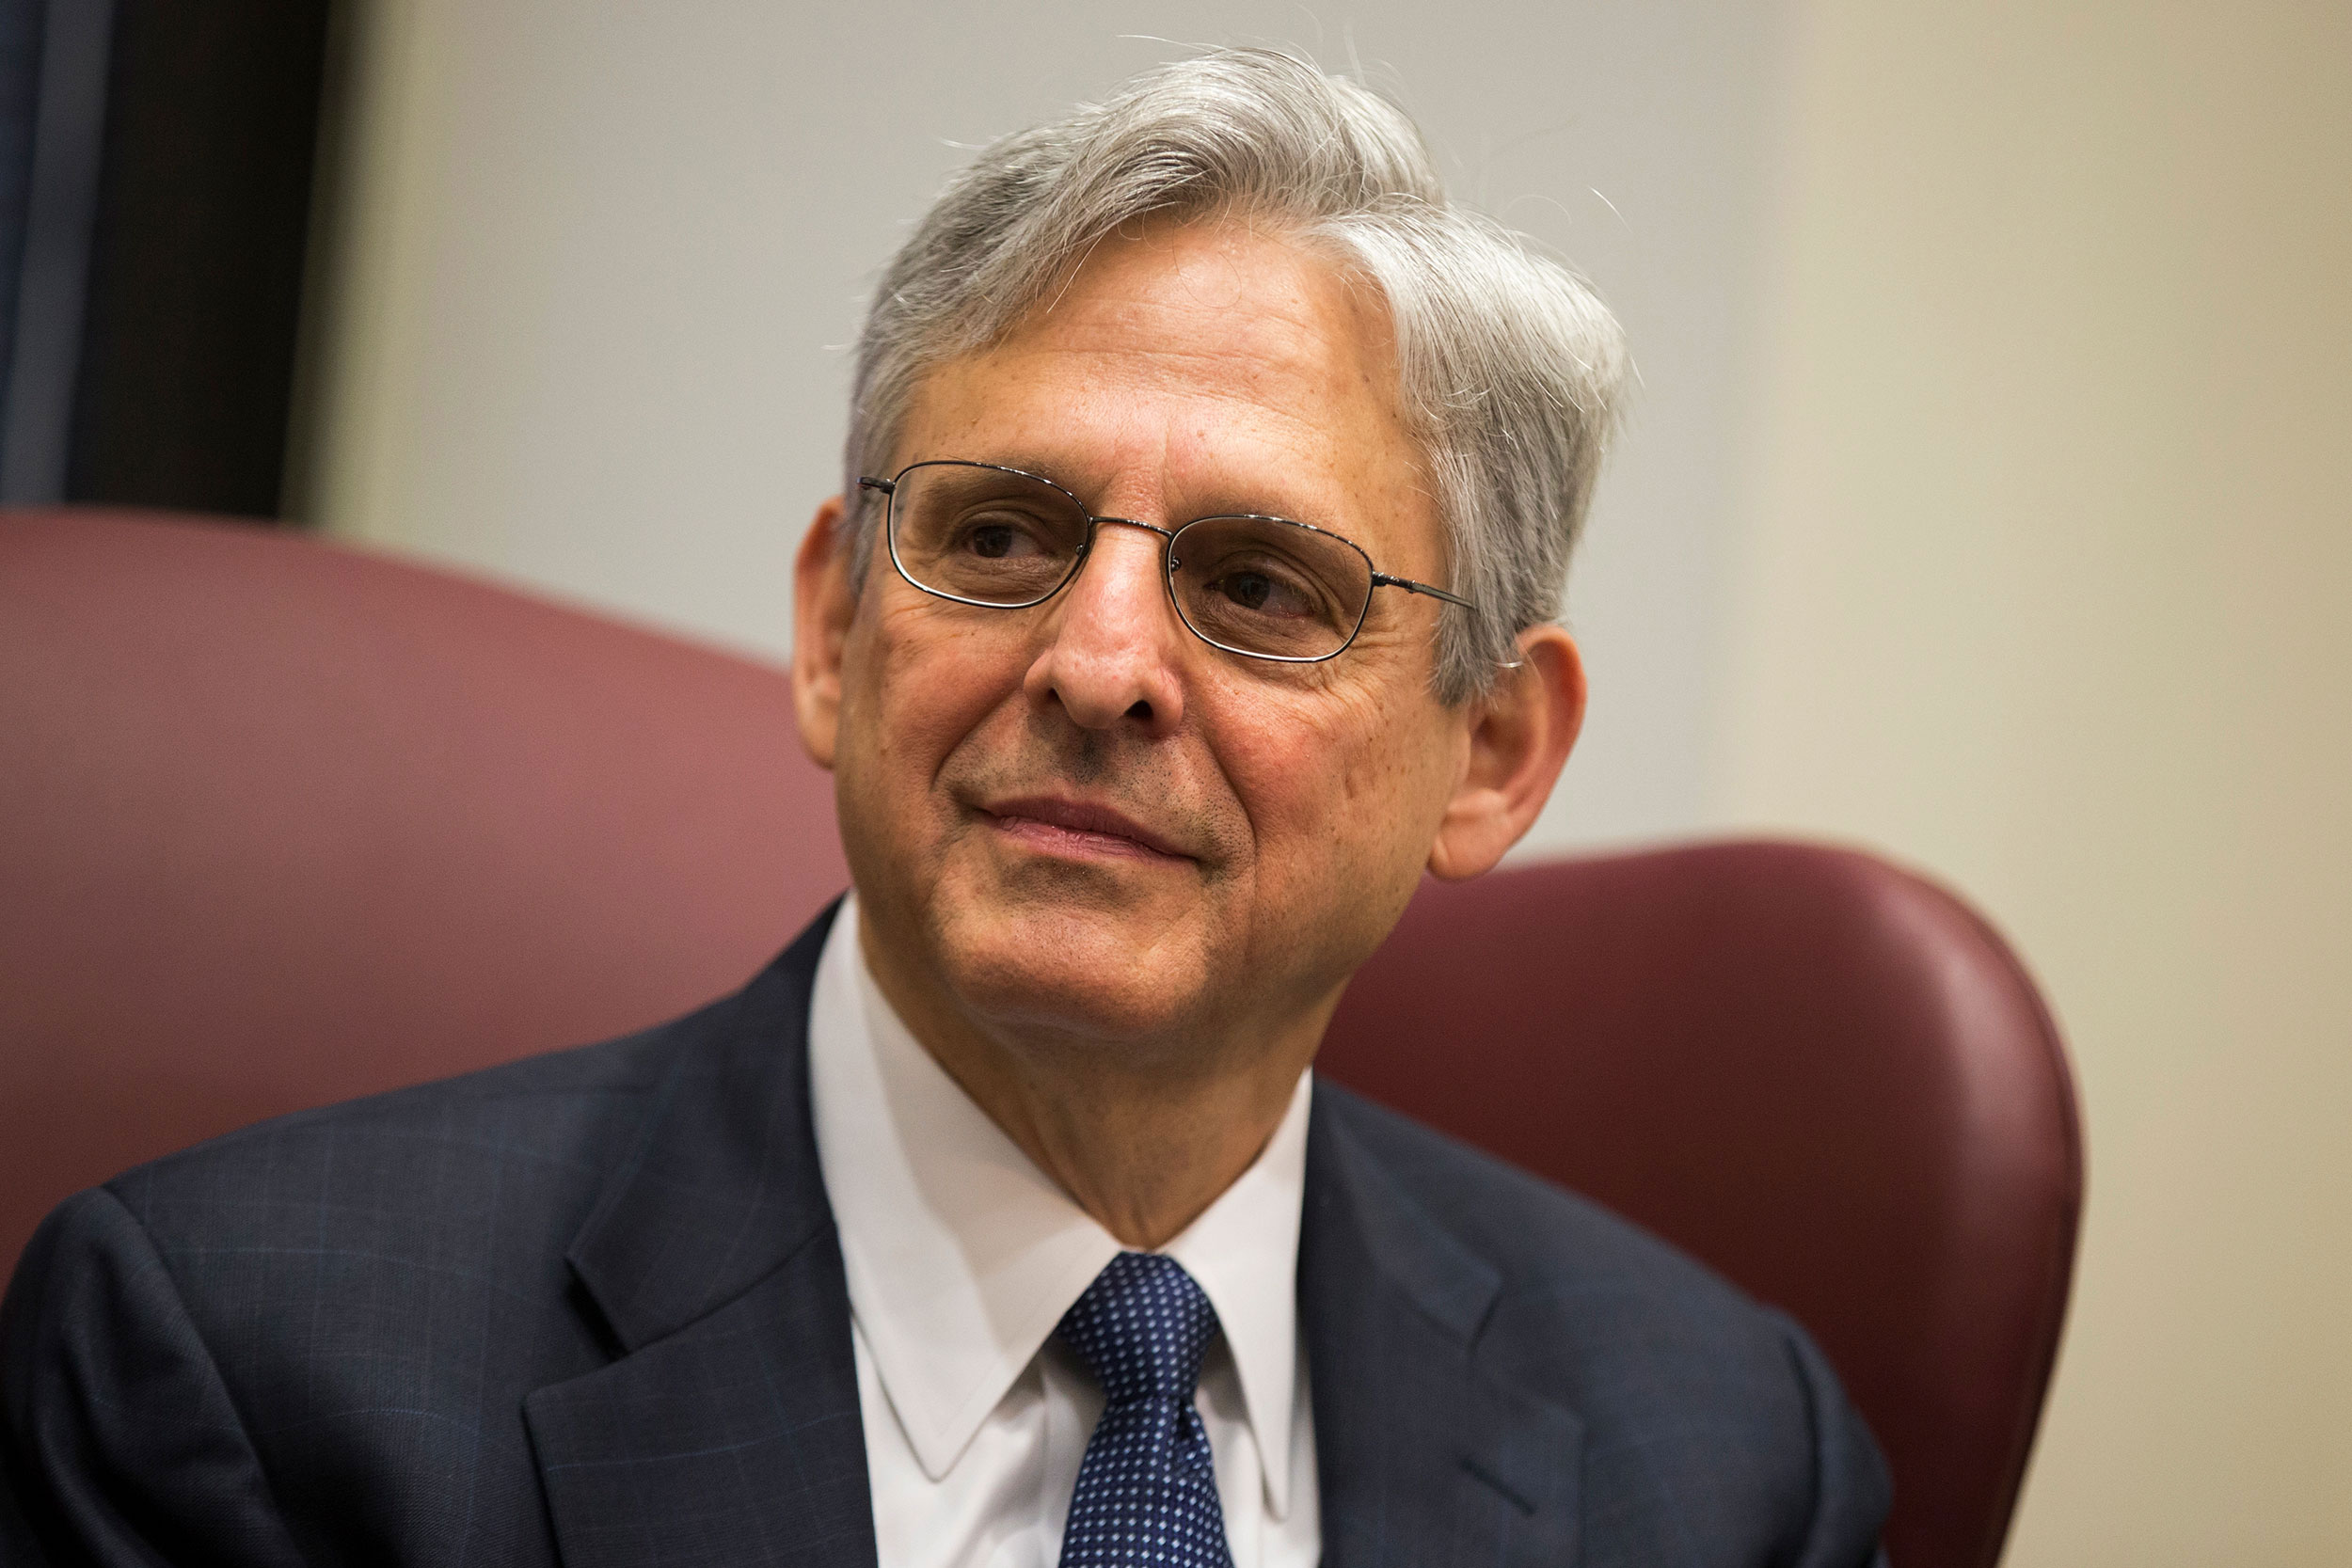 Judge Merrick Garland is pictured during a meeting in Washington, DC, on April 28, 2016.